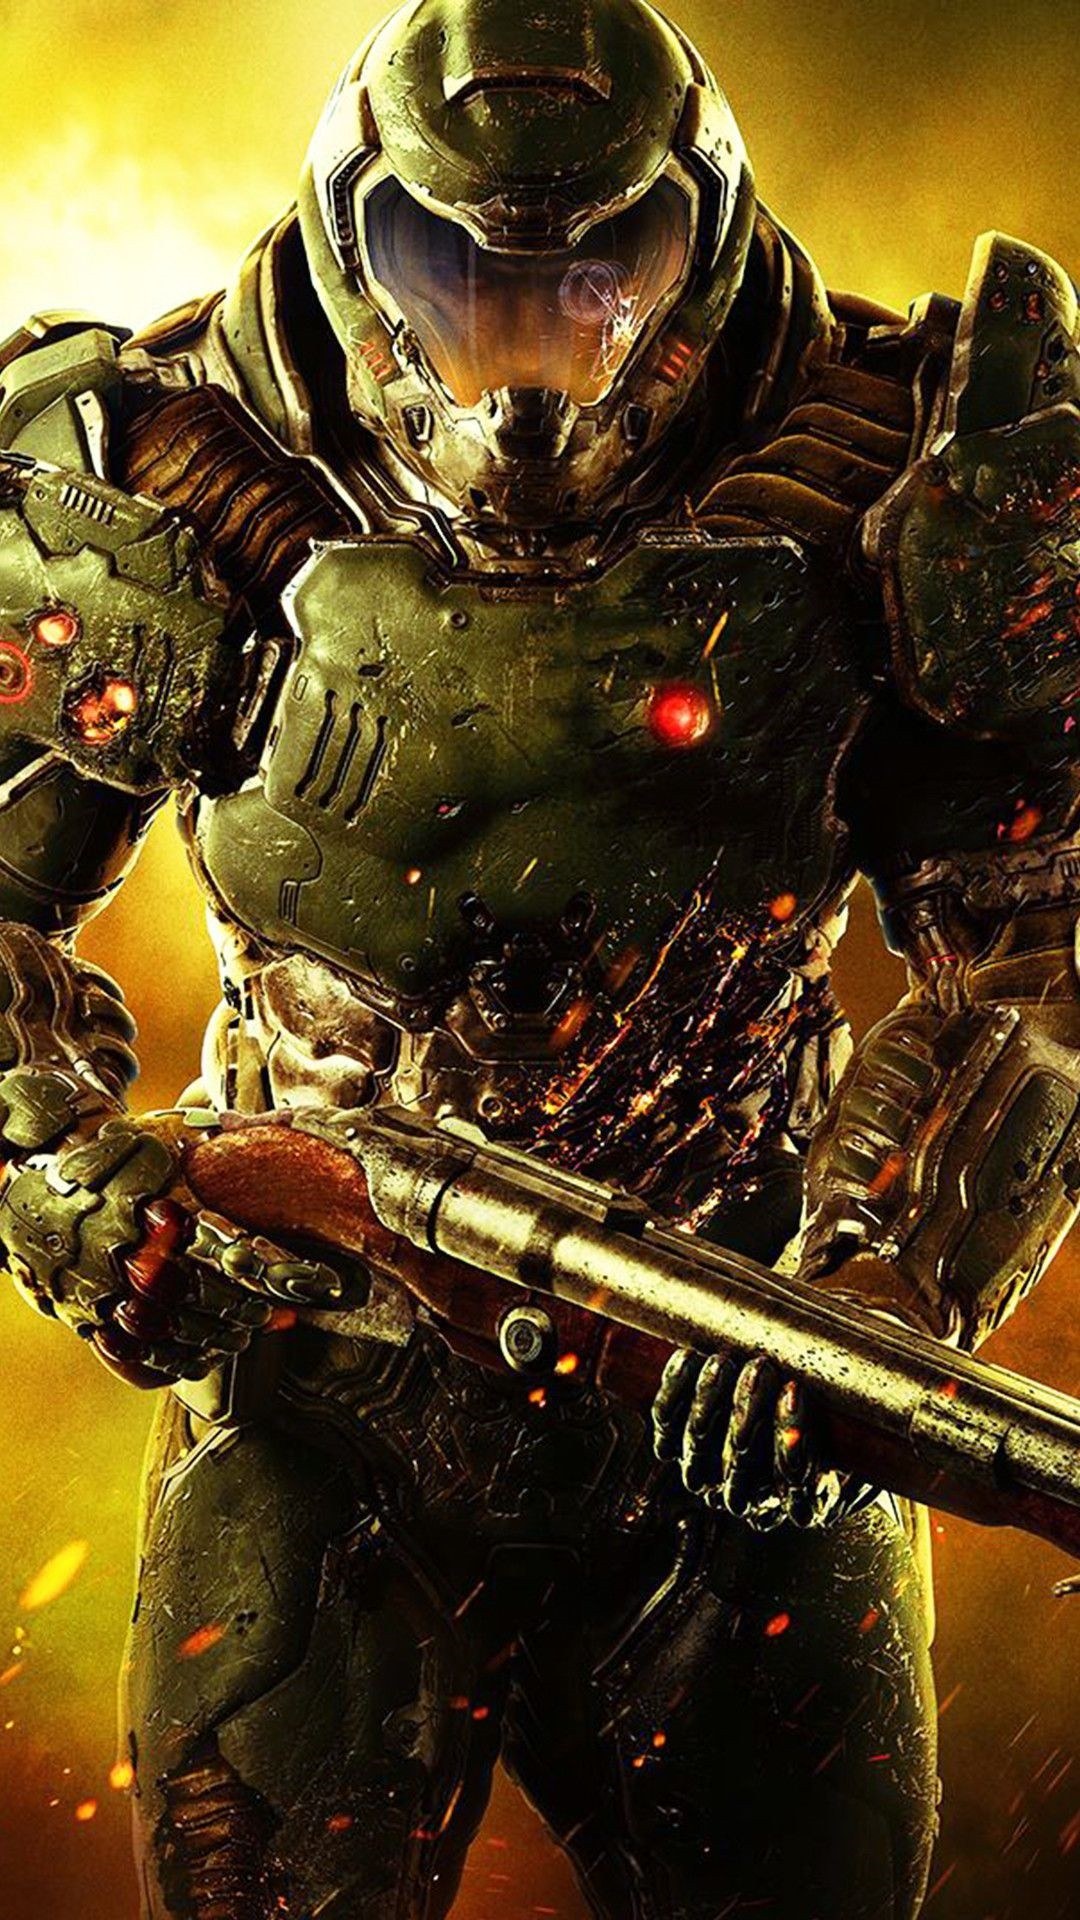 Doom Eternal hd wallpaper for iphone